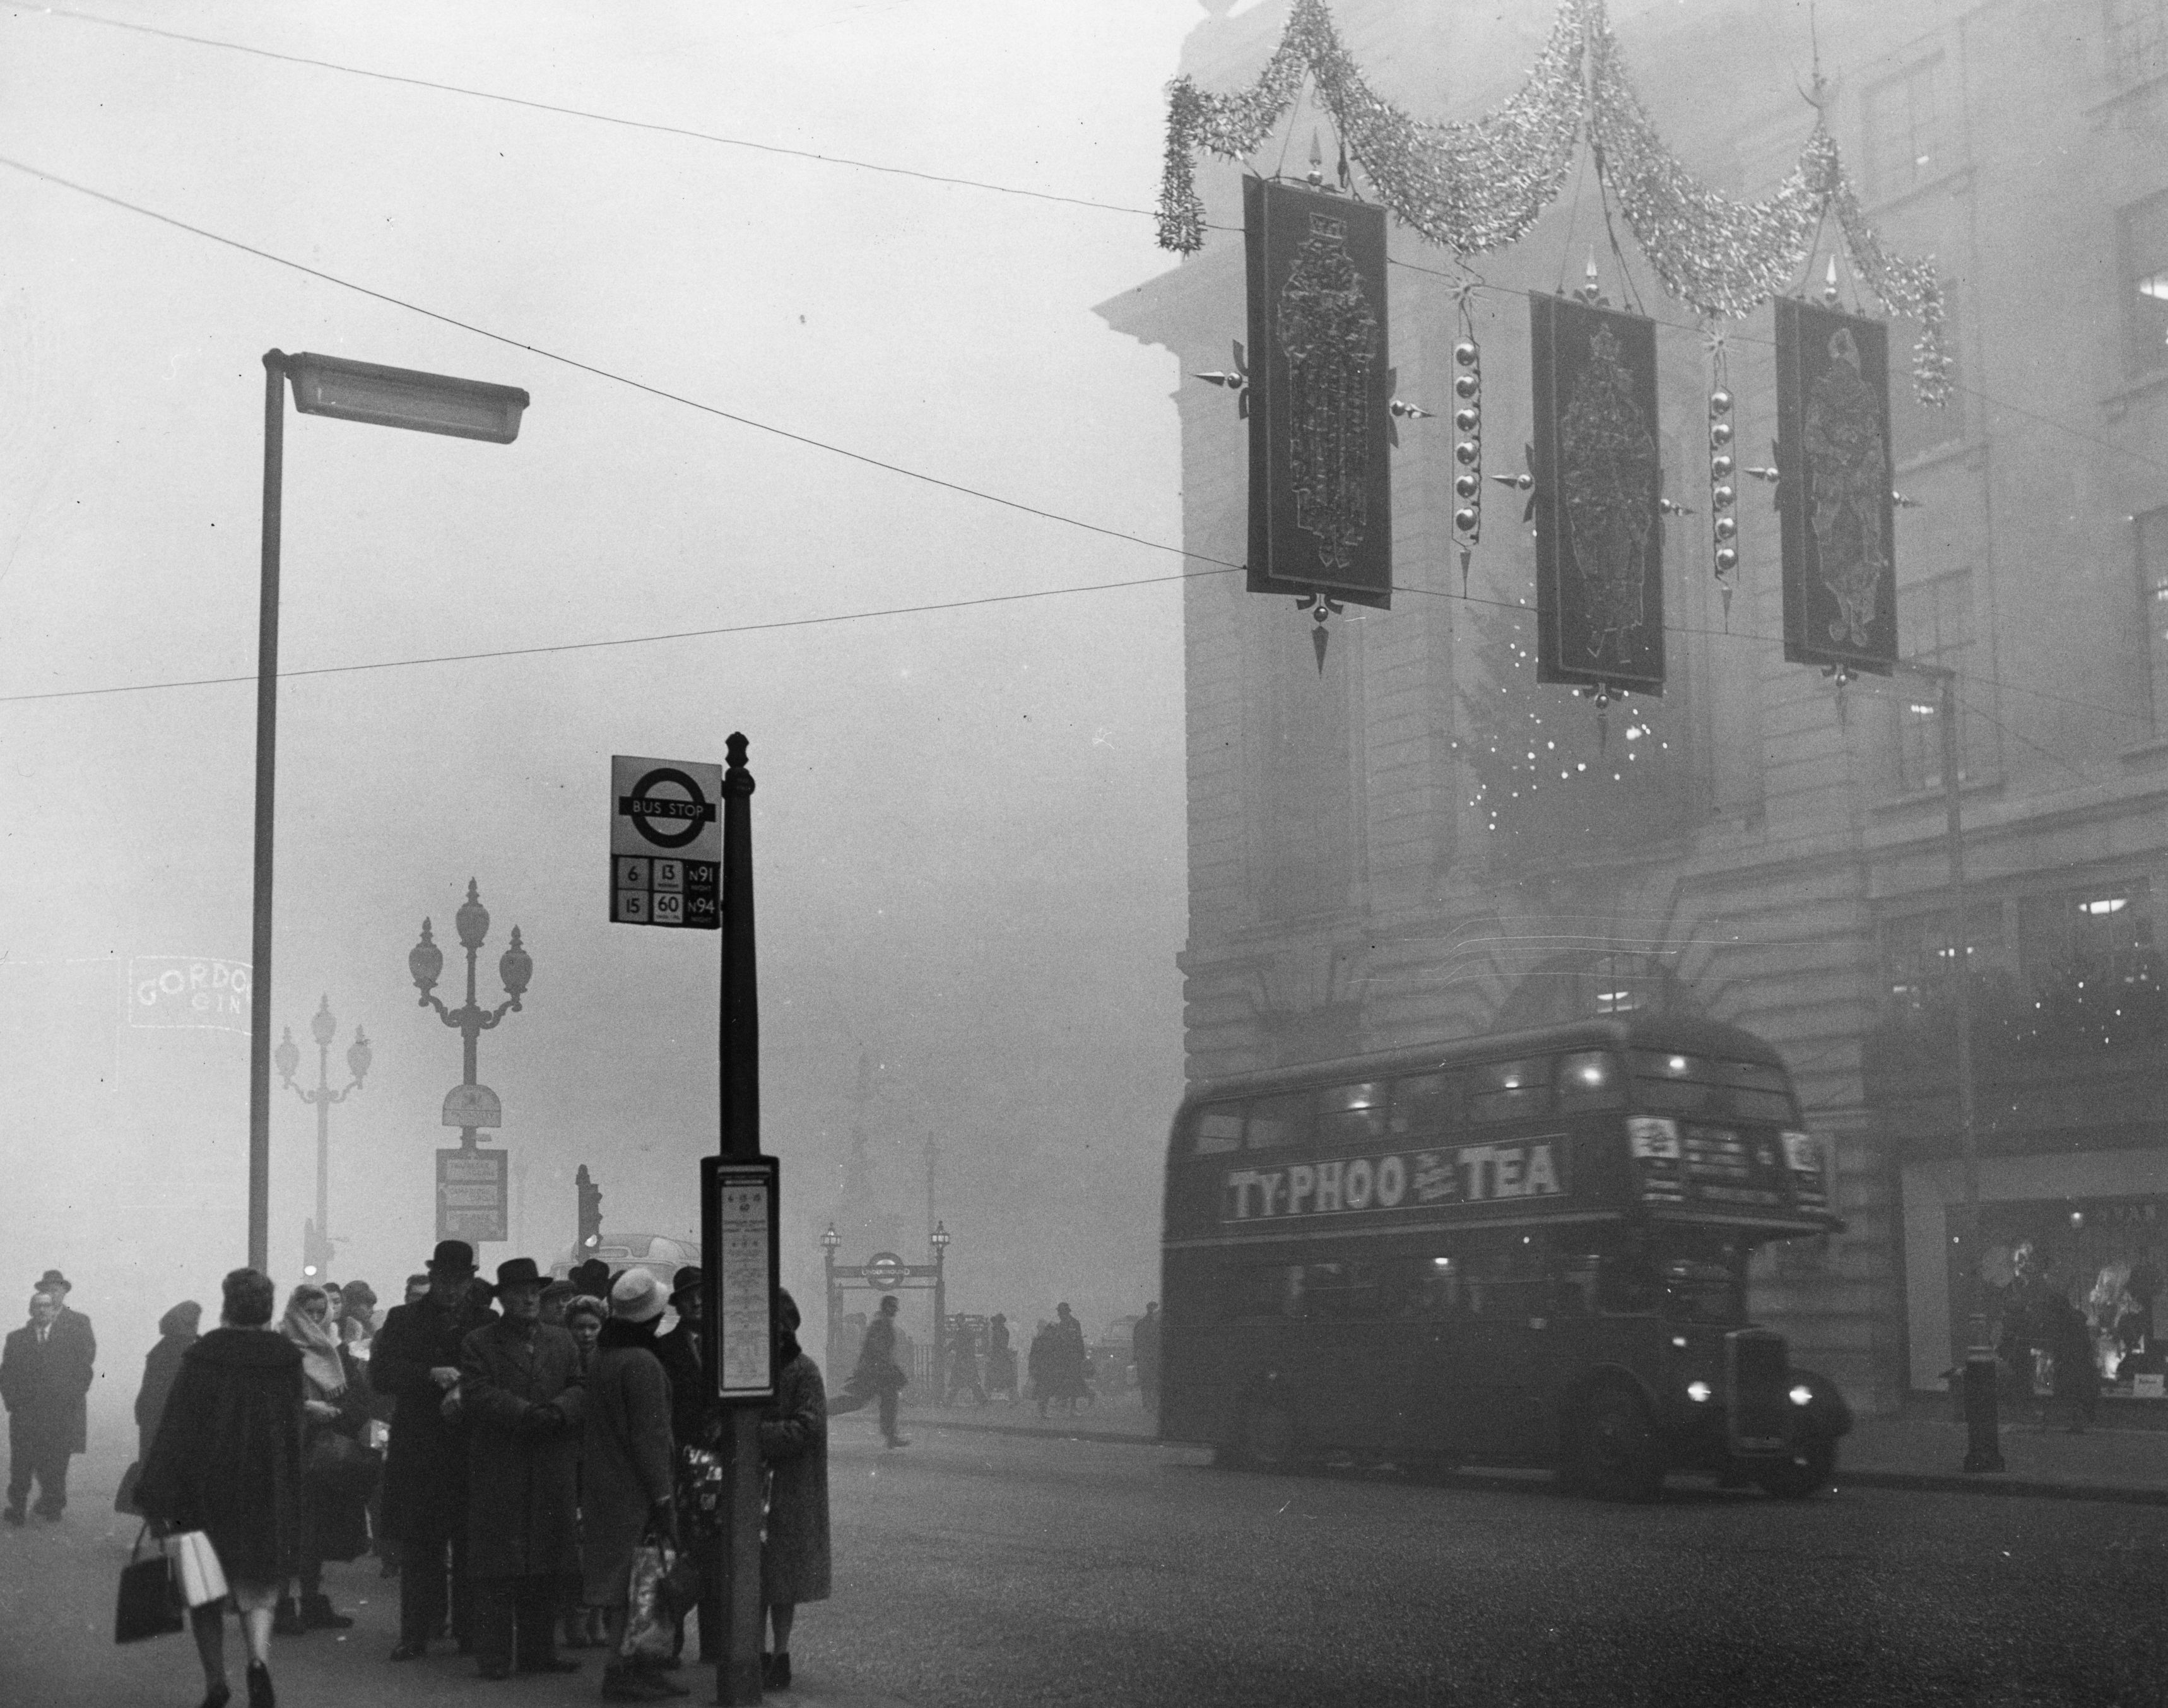 5th December 1962: A heavy fog descends on Christmas shoppers in London's Regent Street. (Photo by Peter King/Fox Photos/Getty Images)